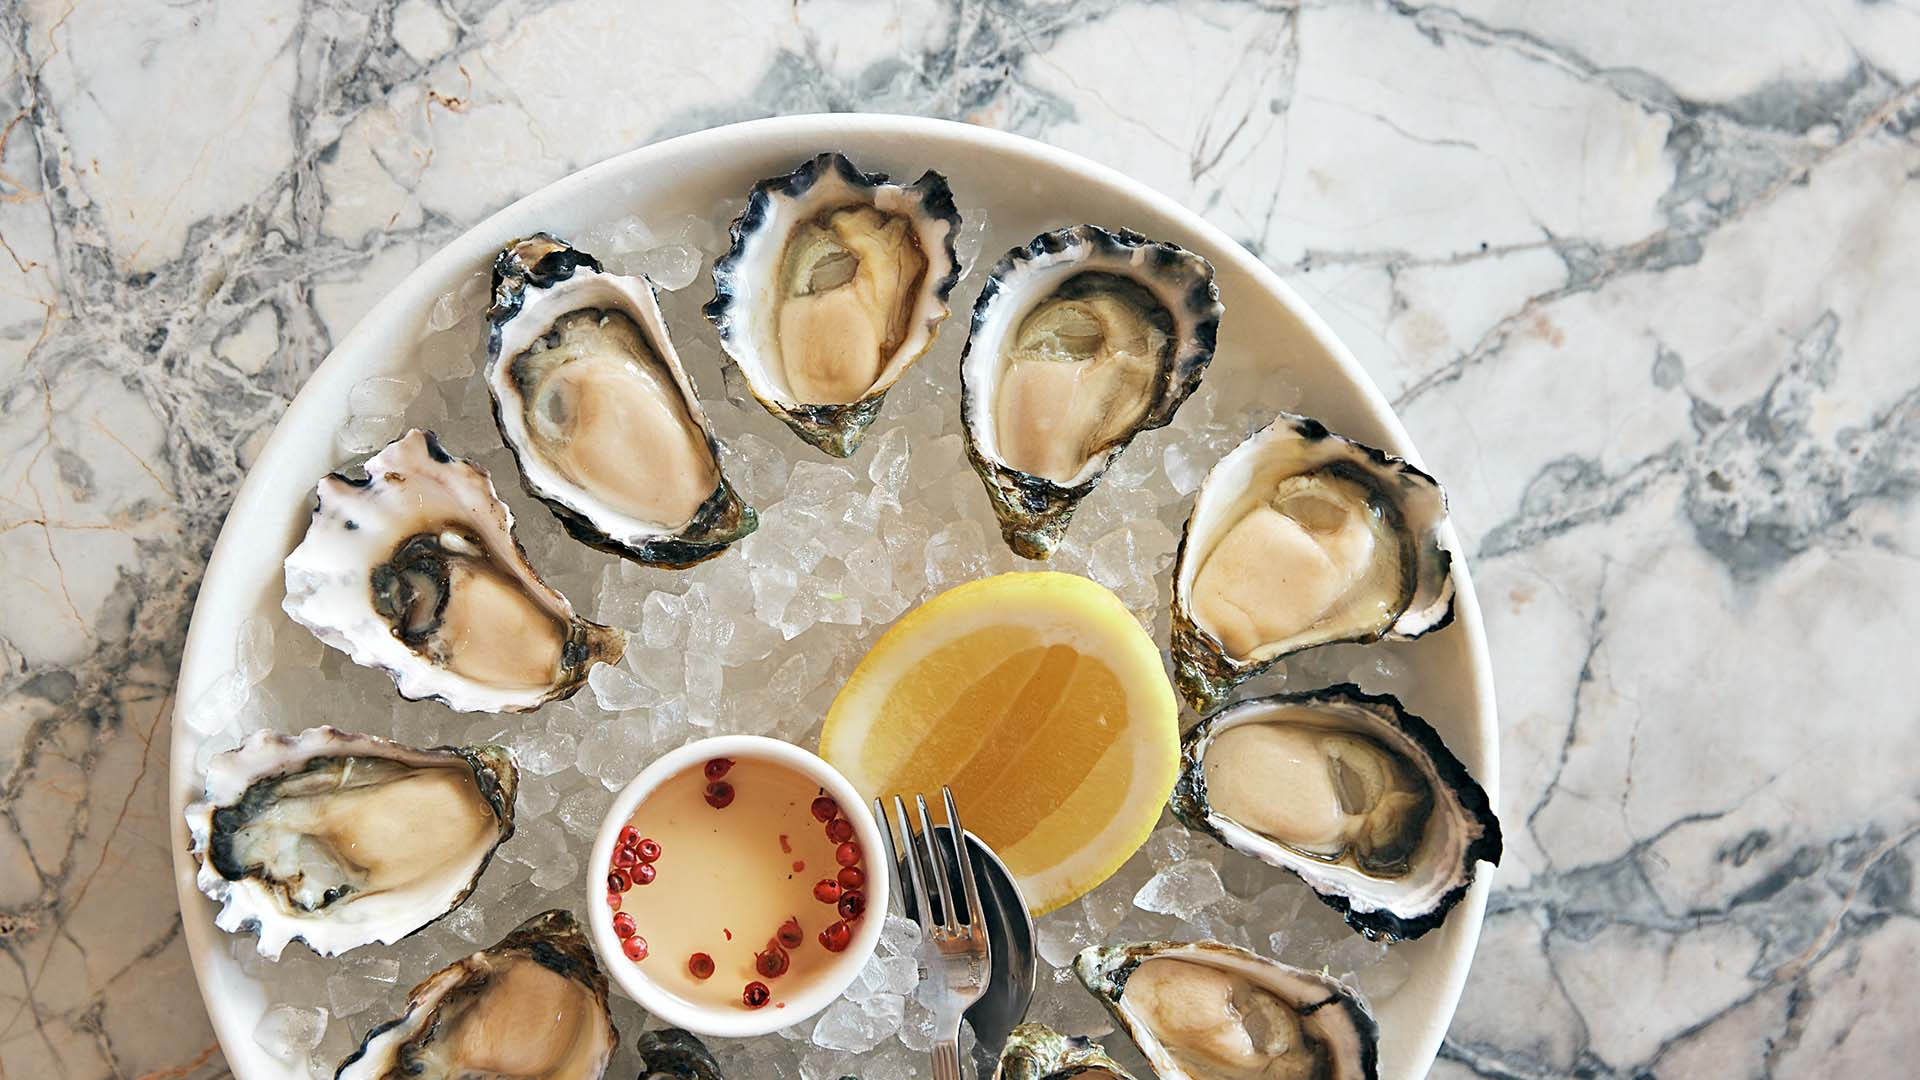 $1.50 Oysters